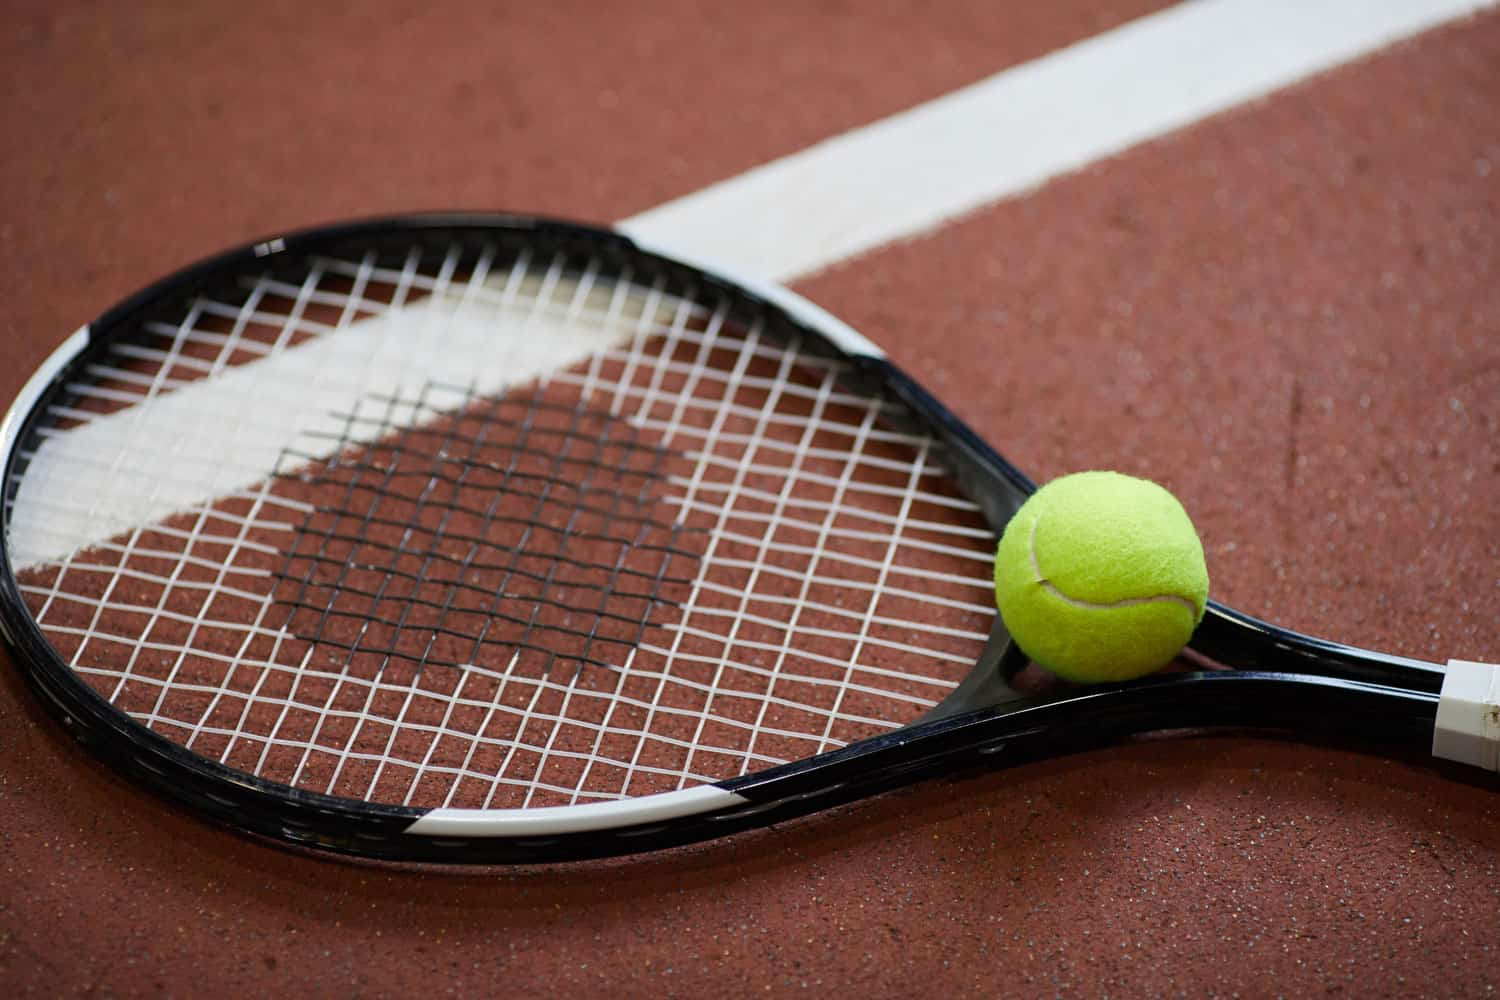 A tennis racket with a tennis ball left on the tennis court